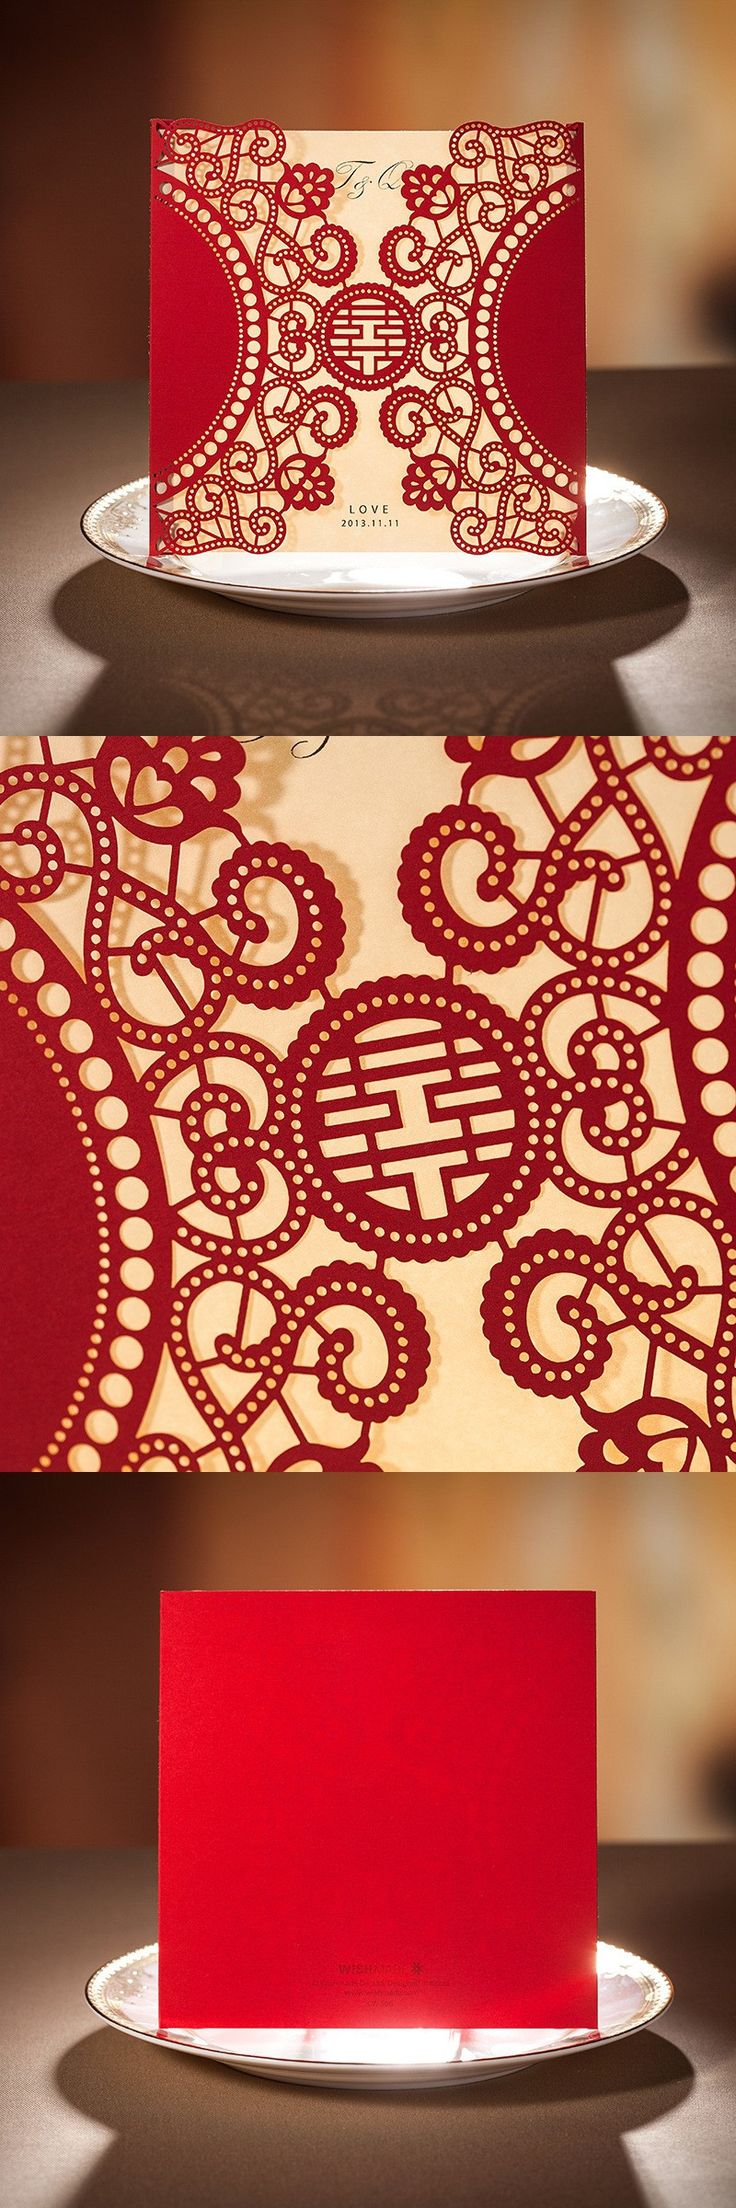 211 best Wedding - Cultural images on Pinterest | Invitations ...